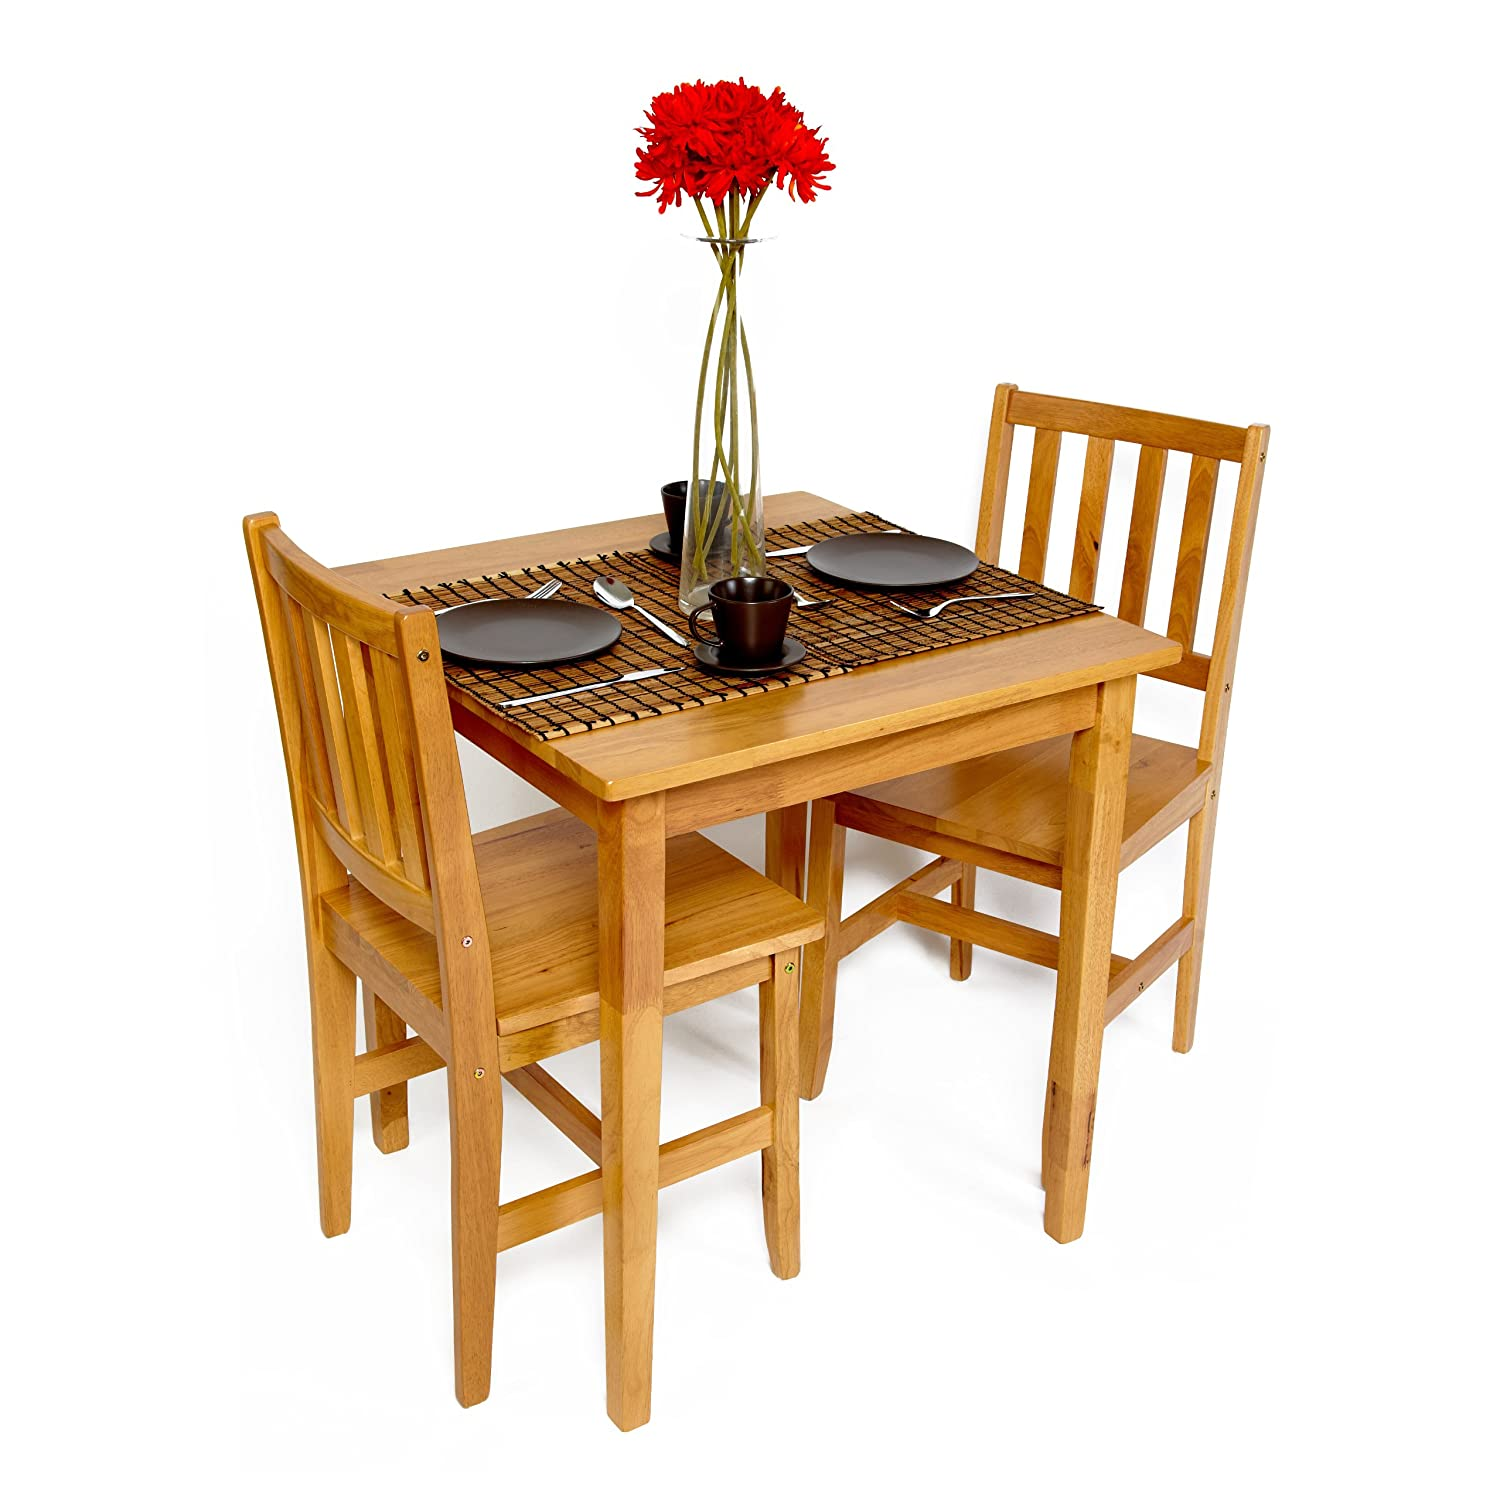 Table And Chairs Set Dining Bistro Small Cafe Tables Wood Wooden 2 Chair Kitchen: wooden dining table and chairs